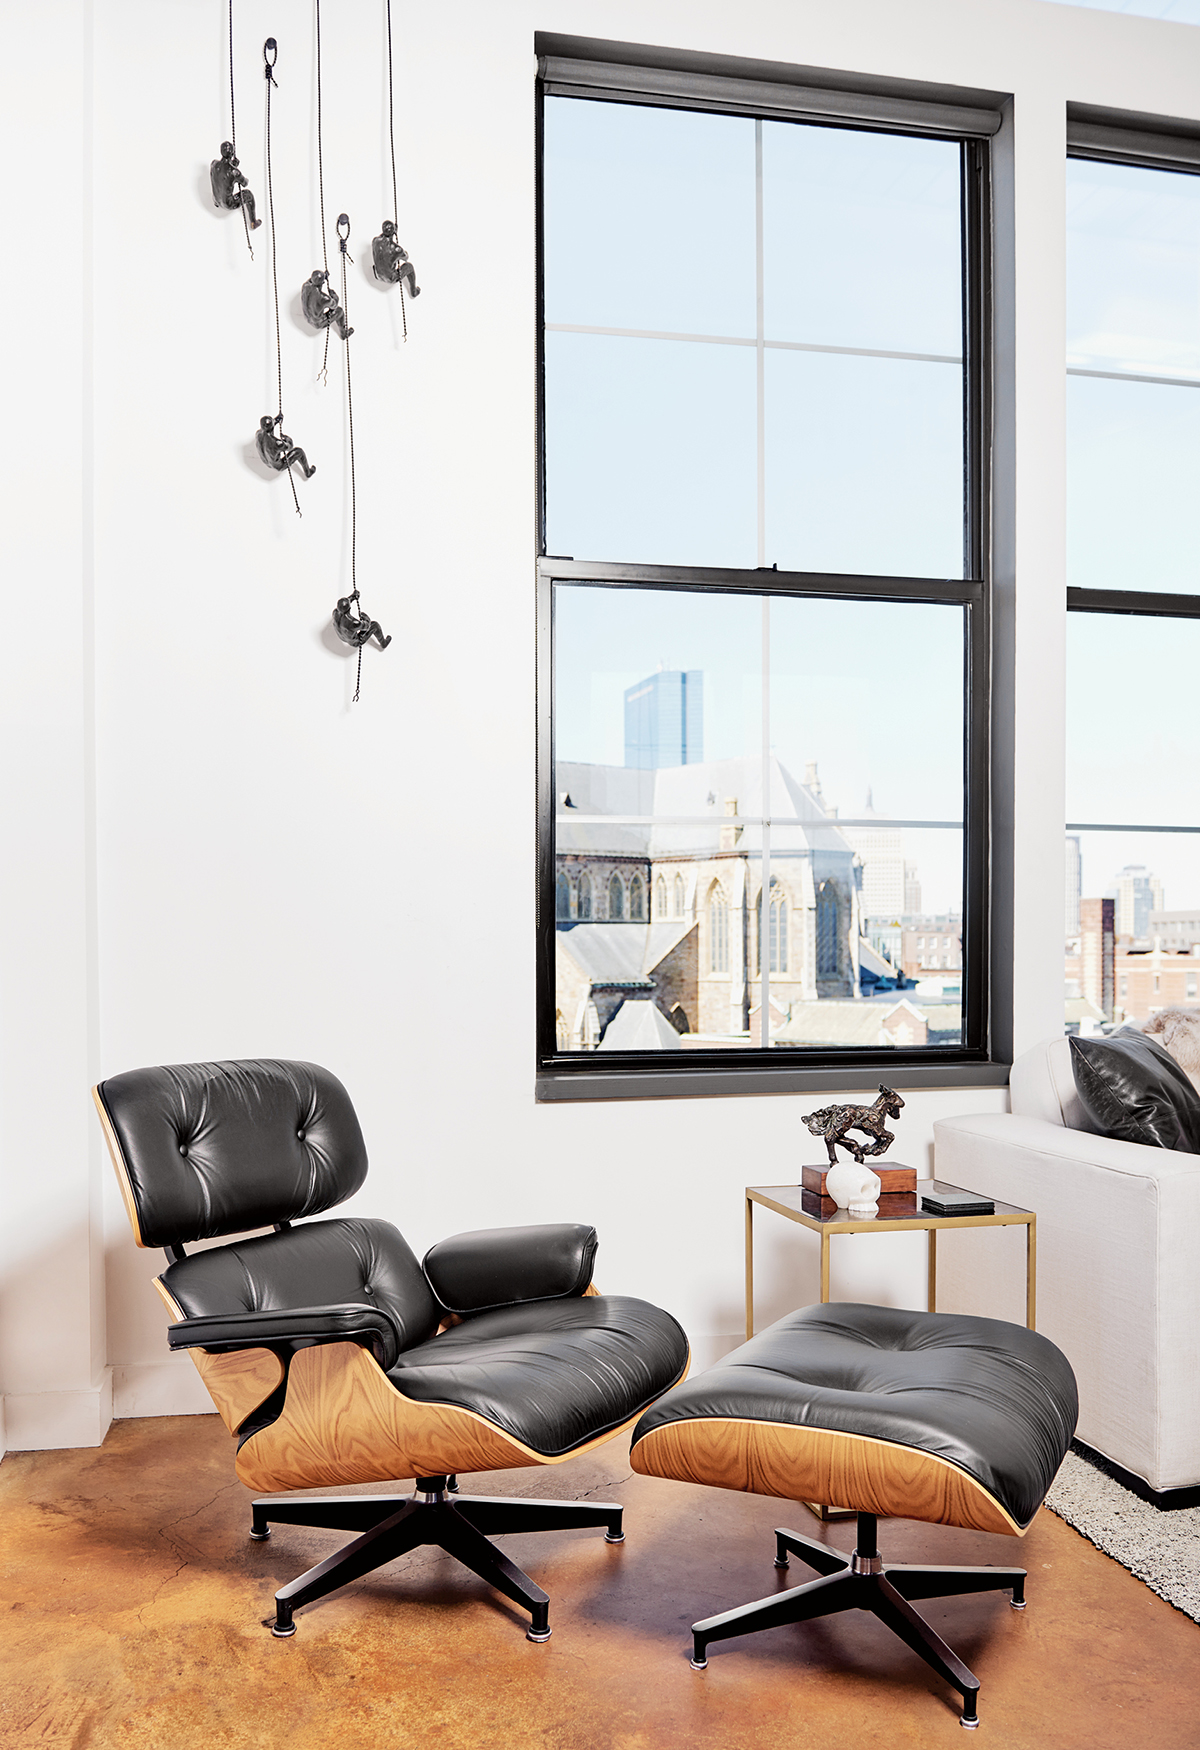 marc hall lounger. Marc Hall  of Marc Hall Design  Showcases a Midcentury Classic